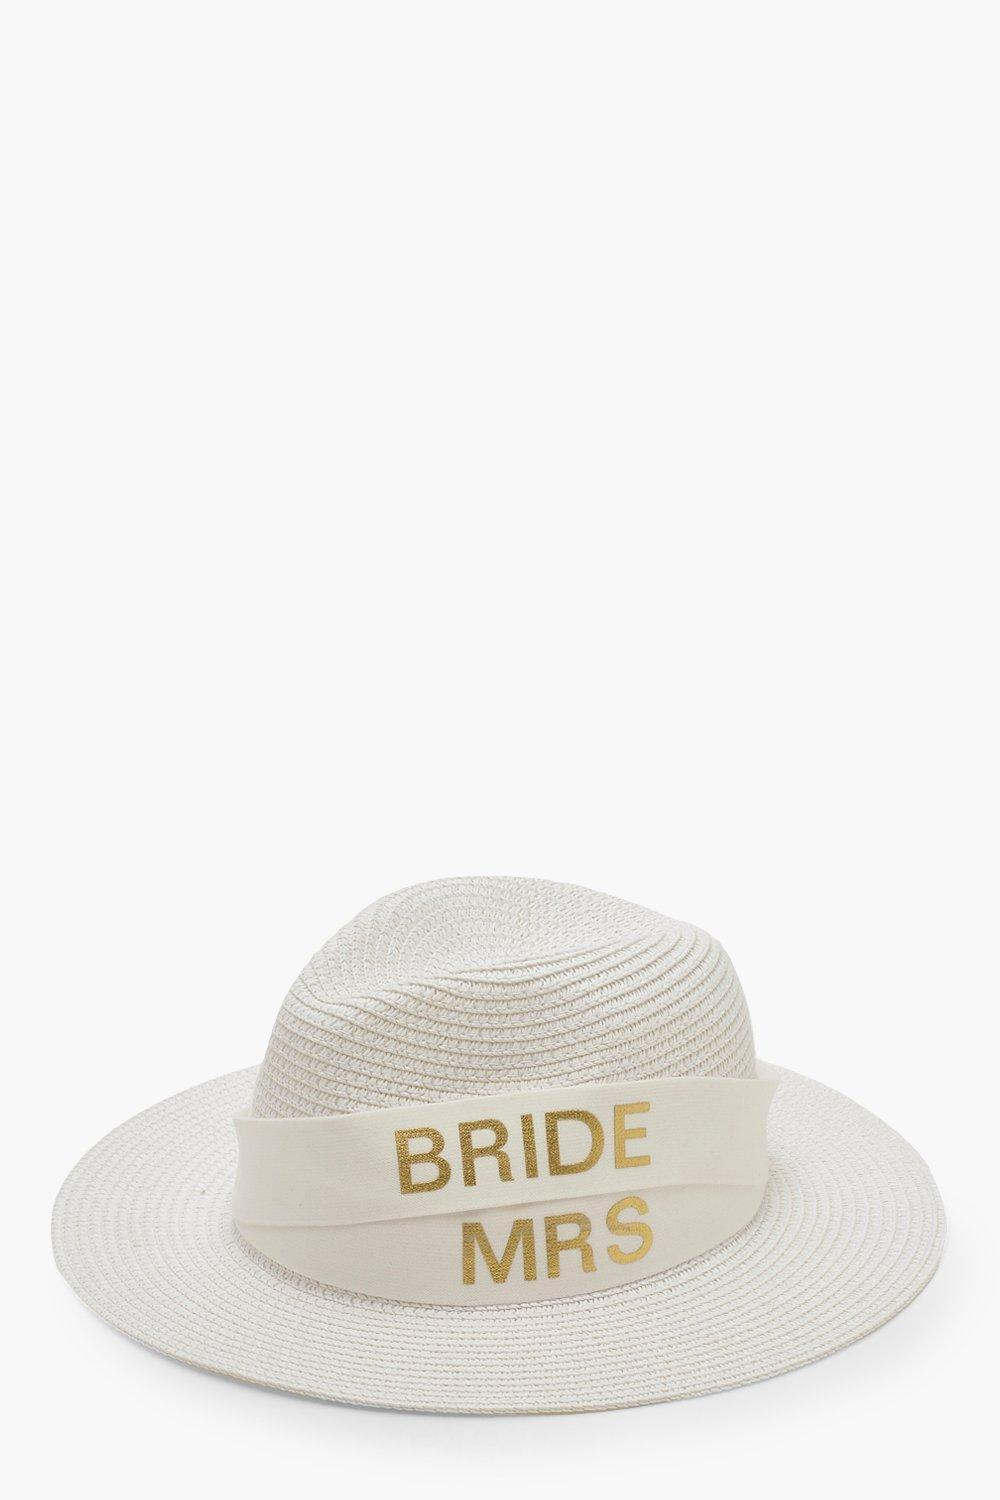 9501fbcaa Boohoo Changeable Band Bride & Mrs Tape Fedora Hat in White - Lyst